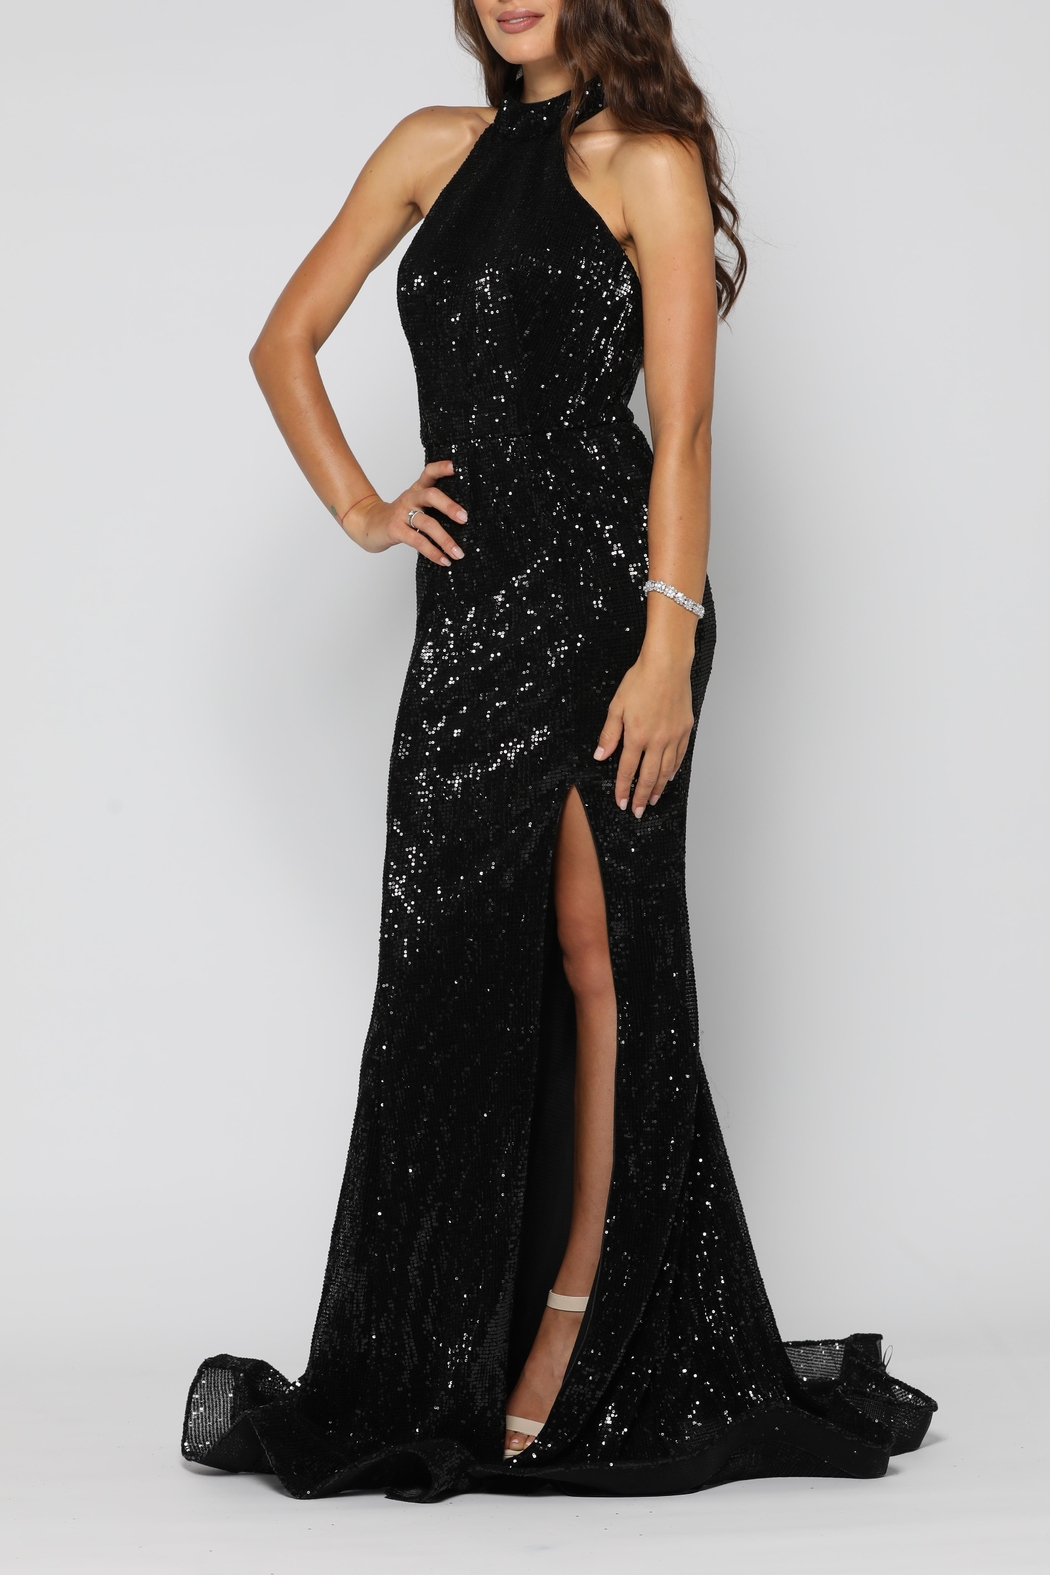 YSS the Label Valerie Gown Black - Front Full Image